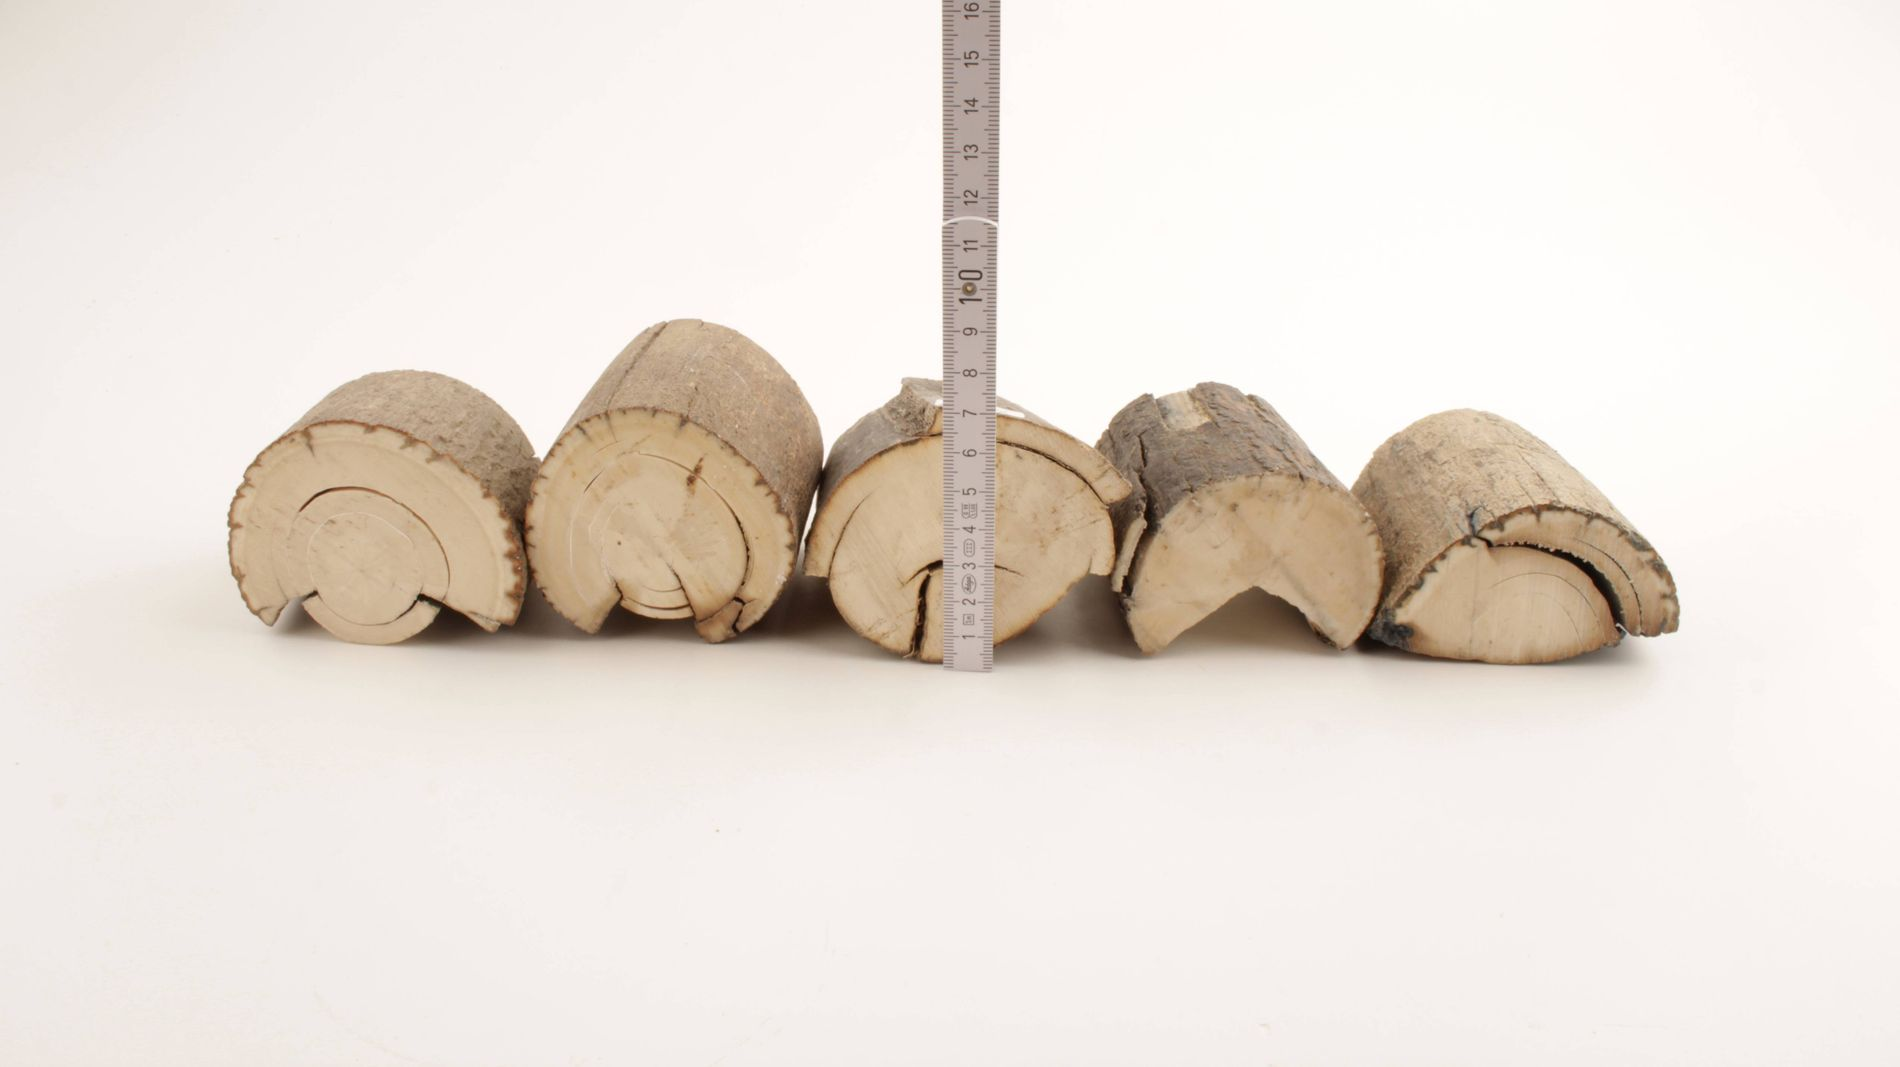 Untreated mammoth ivory offcuts